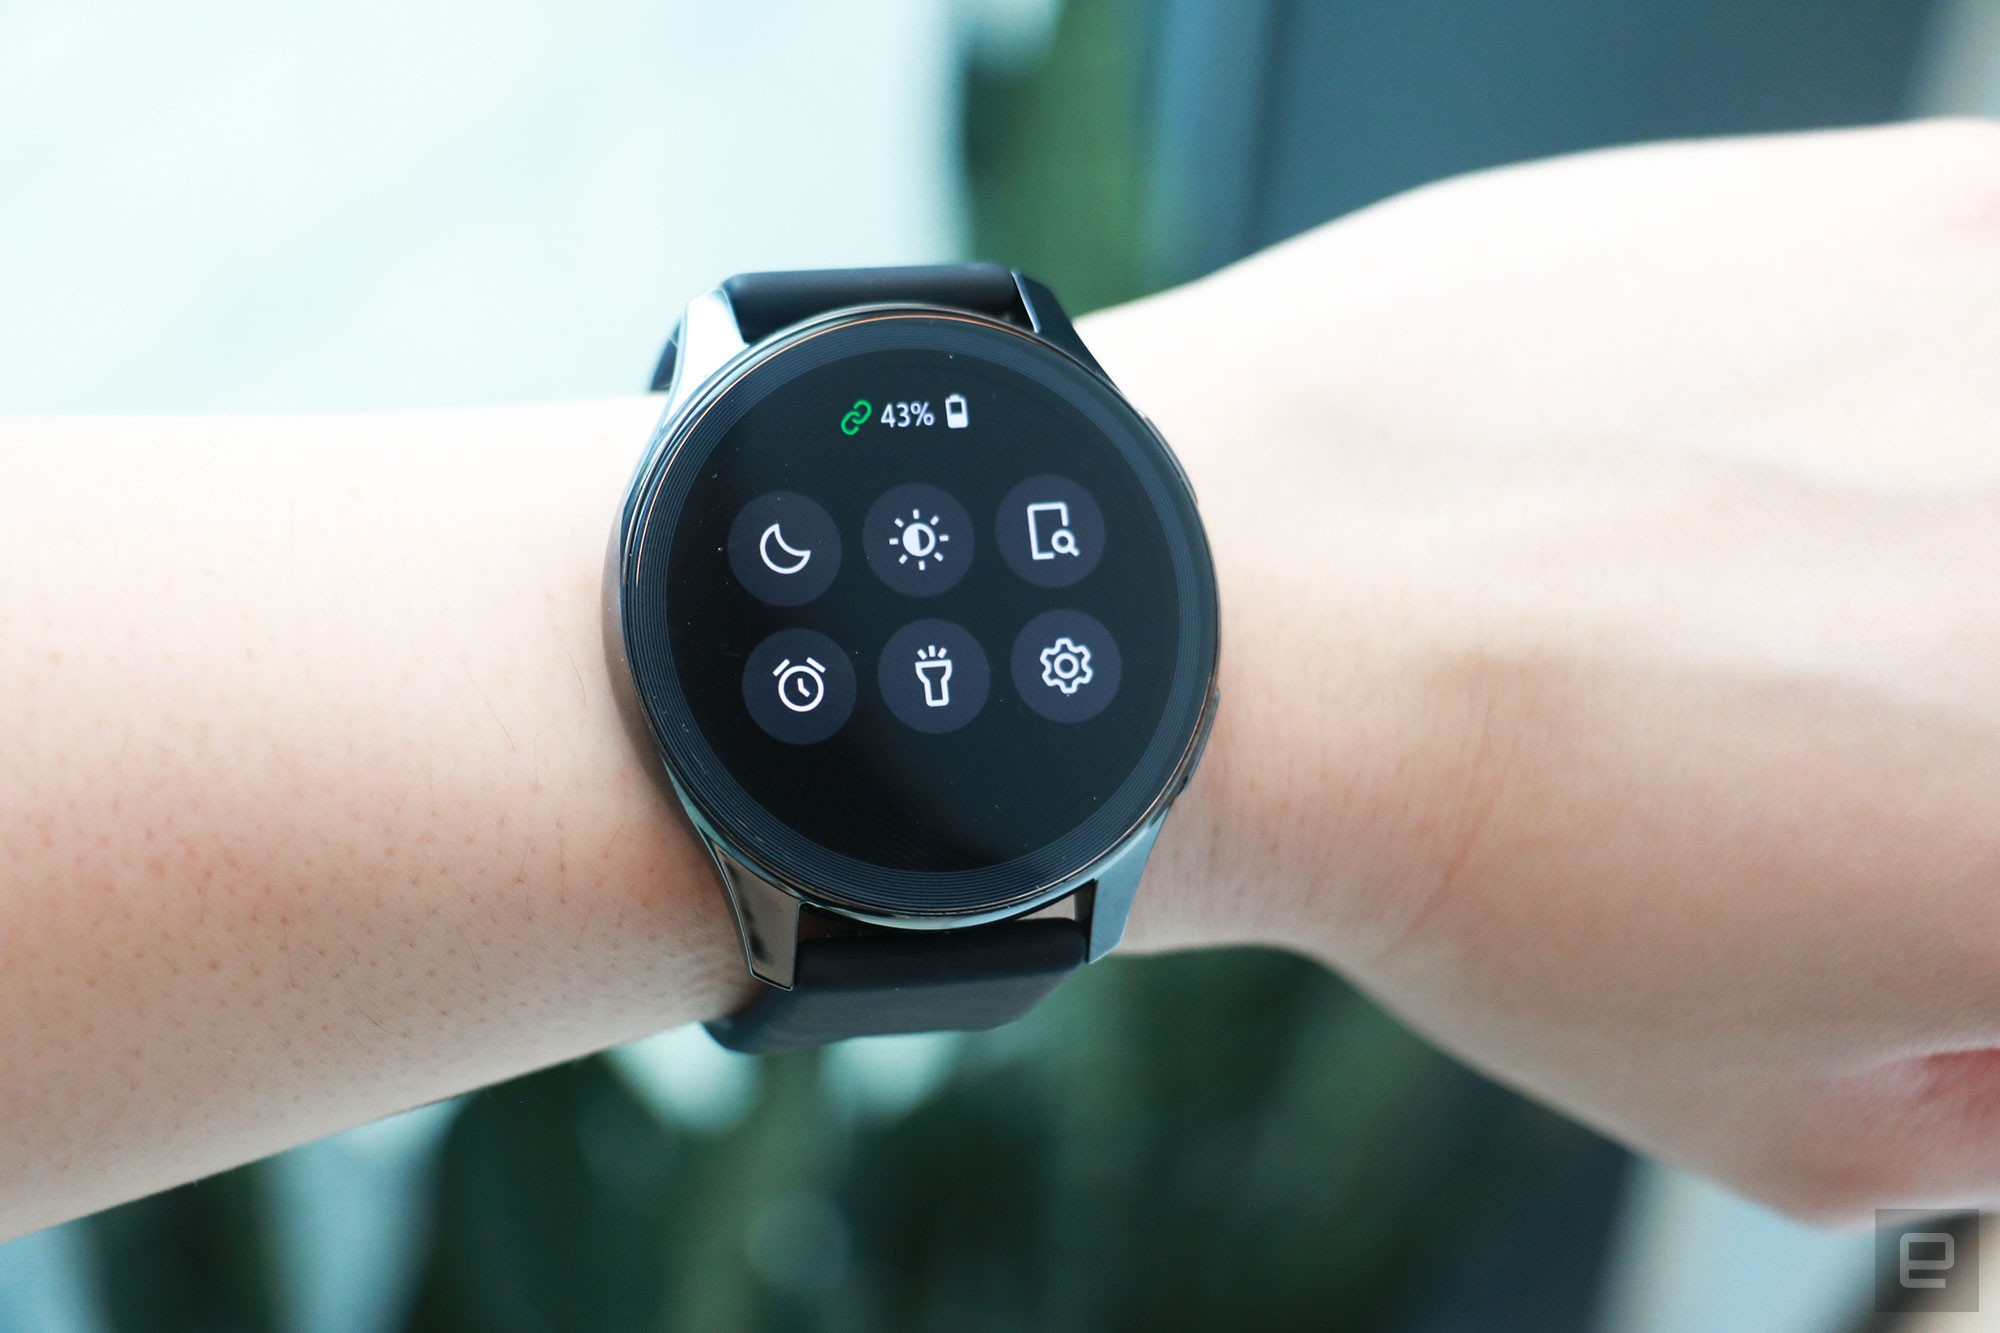 <p>OnePlus Watch review photos. OnePlus Watch on a wrist showing quick settings panel with icons for do not disturb, find my phone, alarms, flashlight, settings and brightness, as well as a battery indicator showing 43 percent.</p>